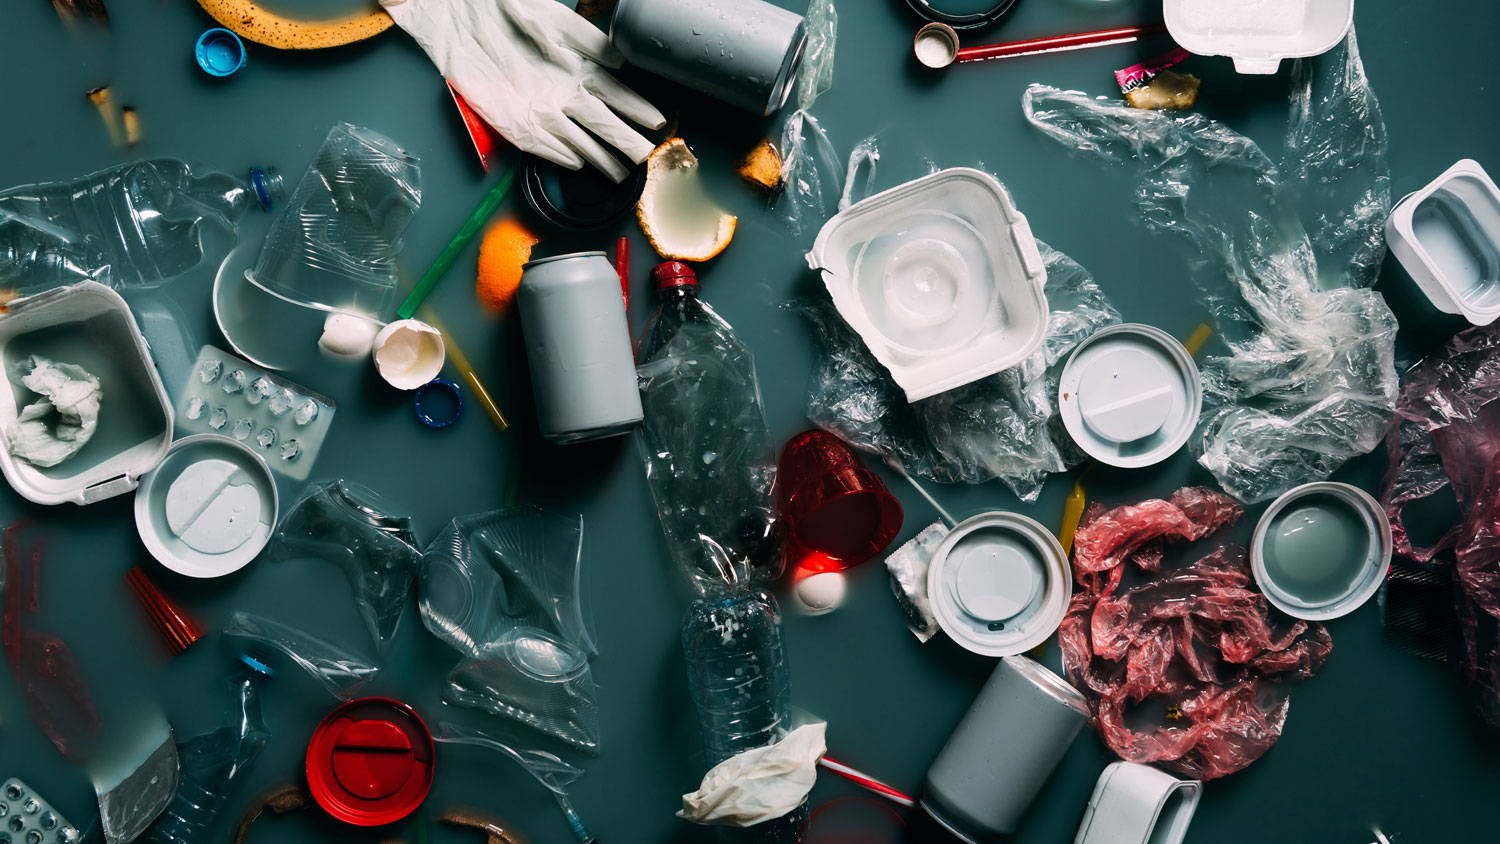 Guess how long it takes for plastic to biodegrade: Forever